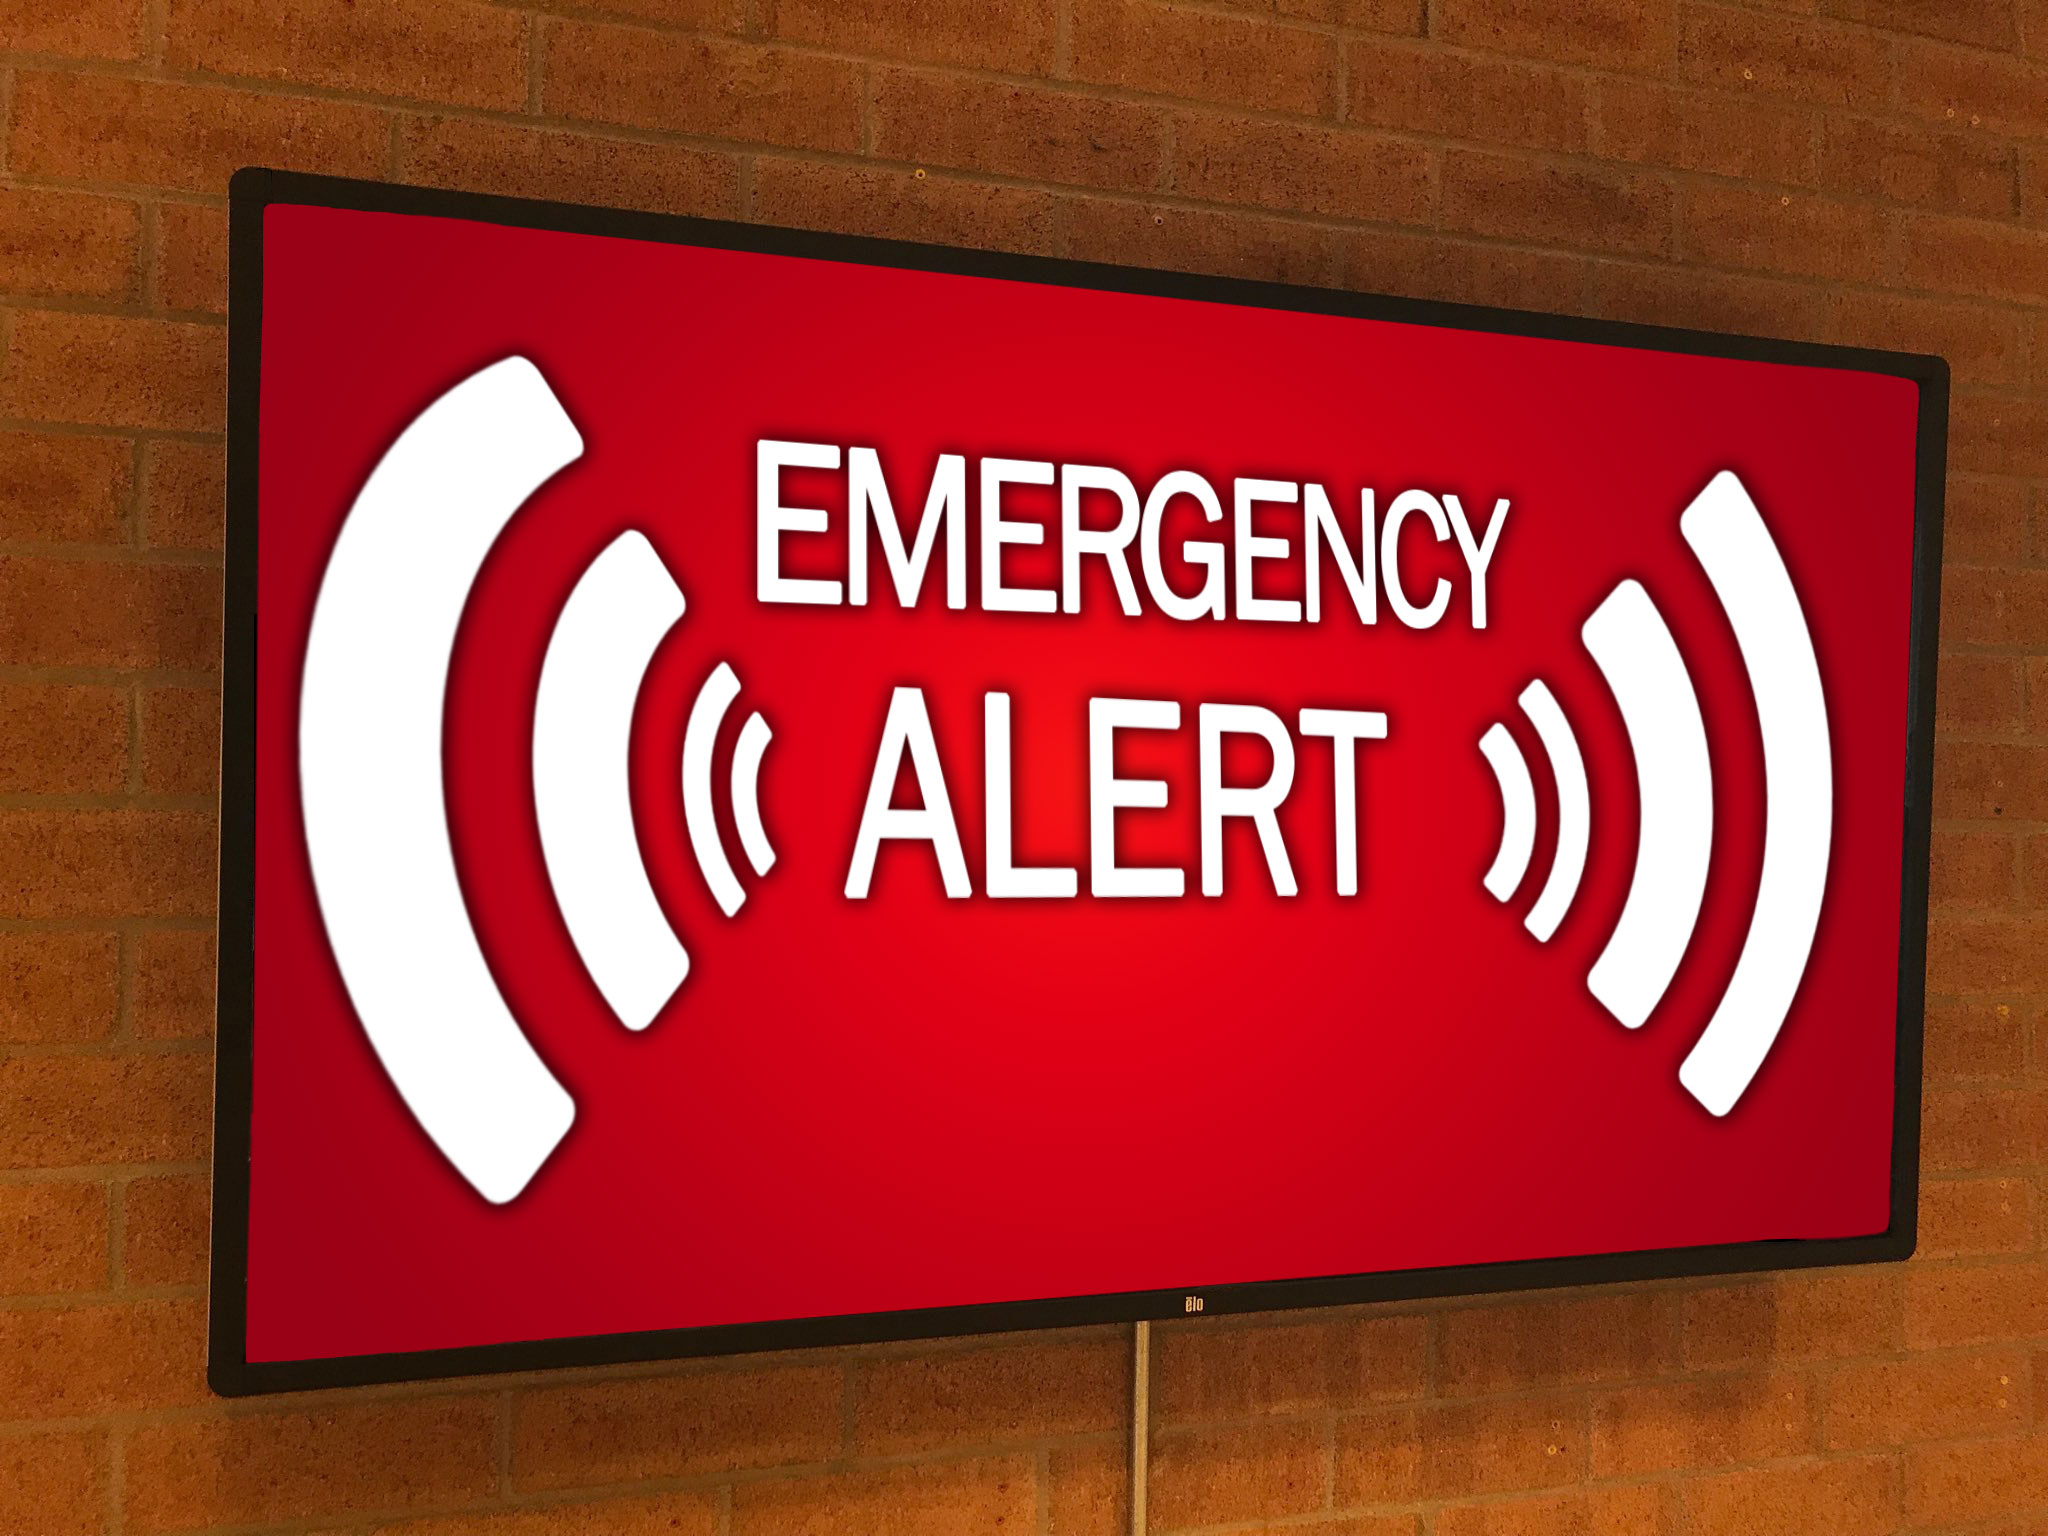 DEVOS Priority Alert notifies people of an emergency wherever they are looking - desktop, mobile or display